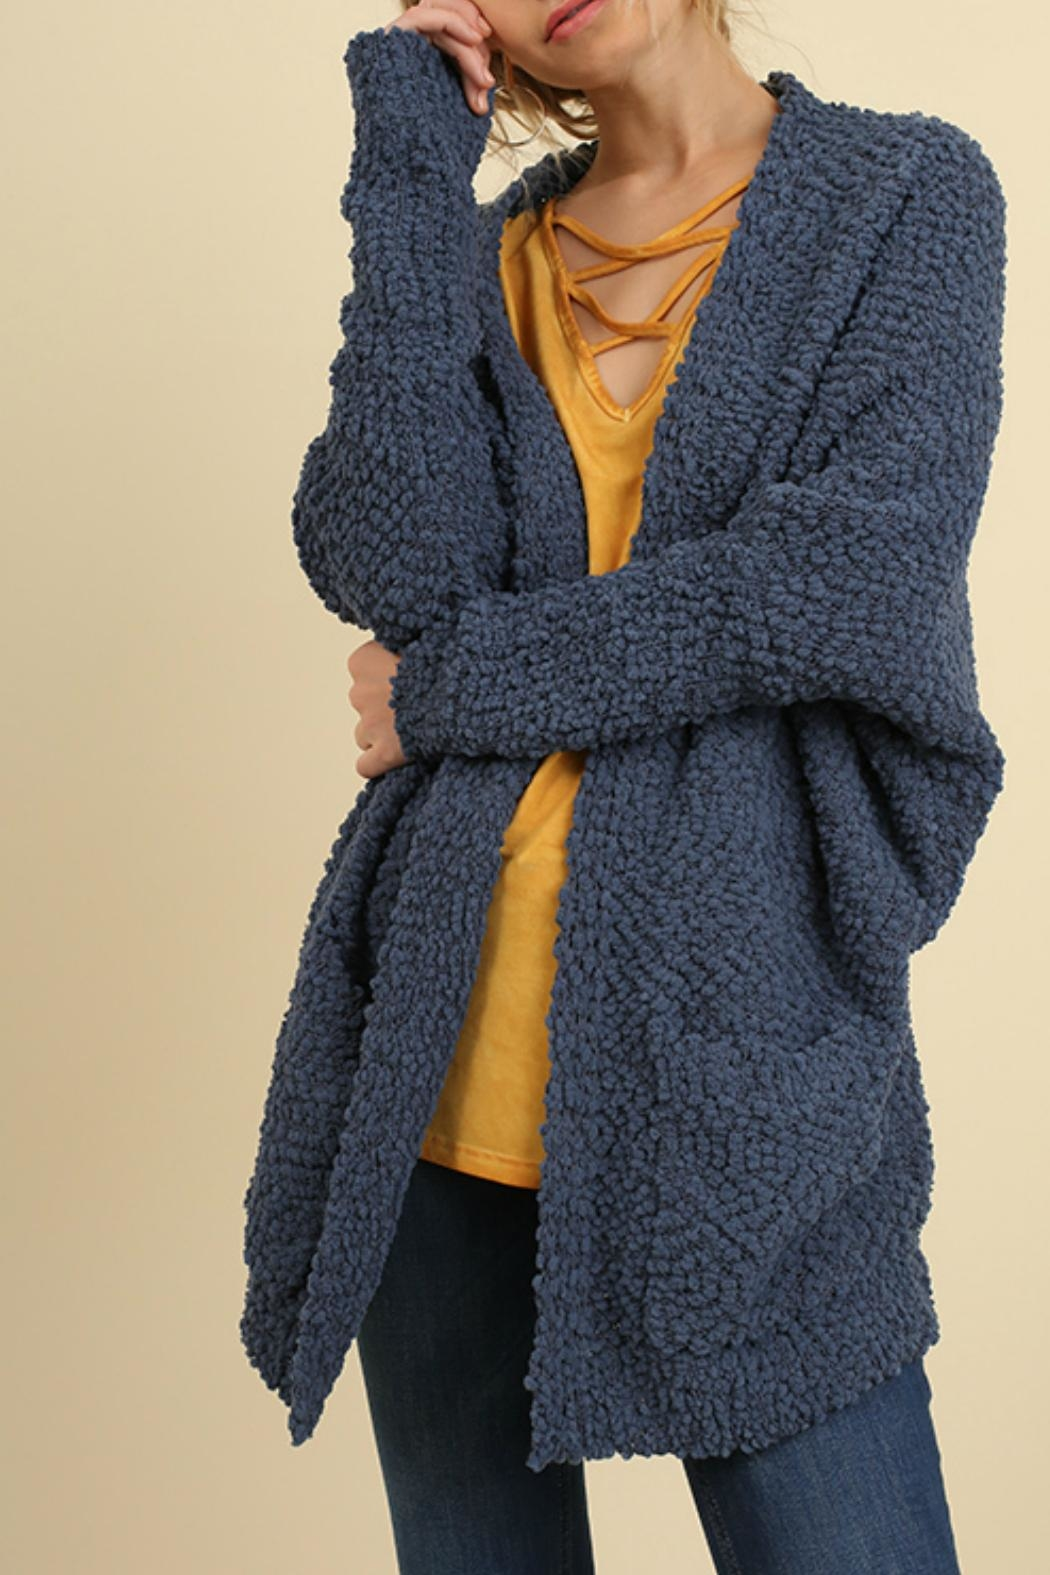 Umgee USA Oversized Cardigan Sweater from Texas by POE and Arrows ...